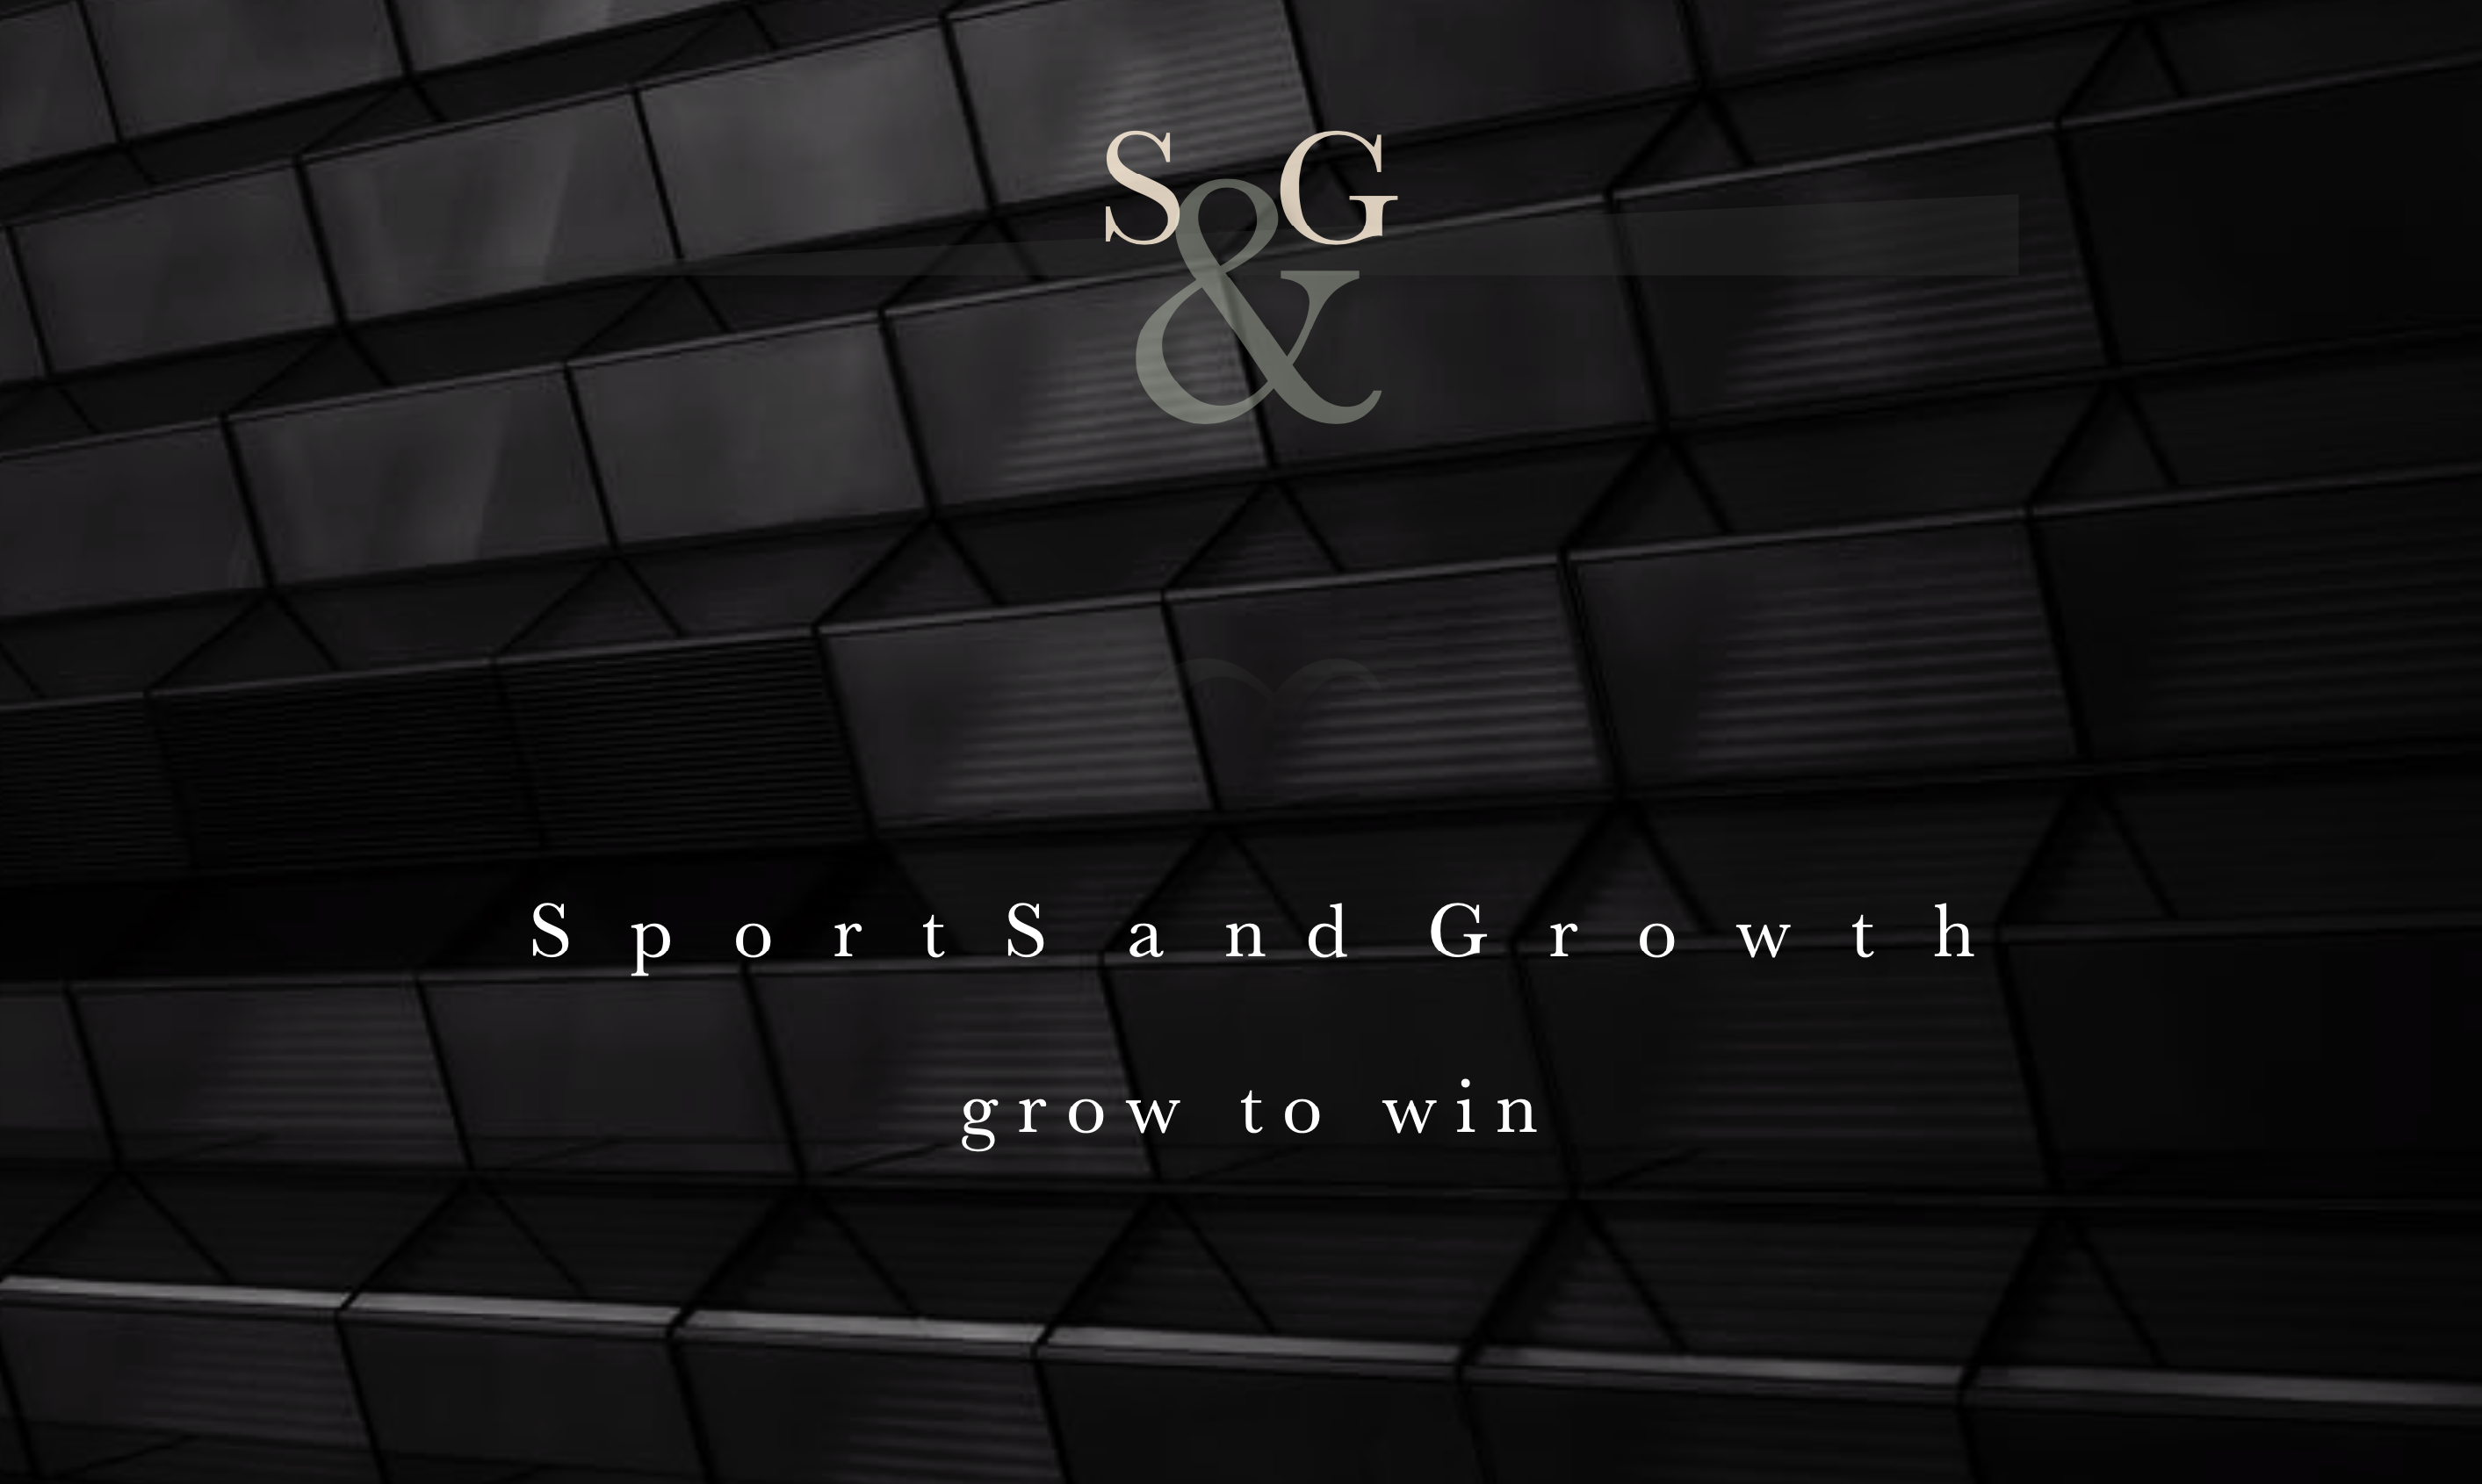 S&G social network & sports agency